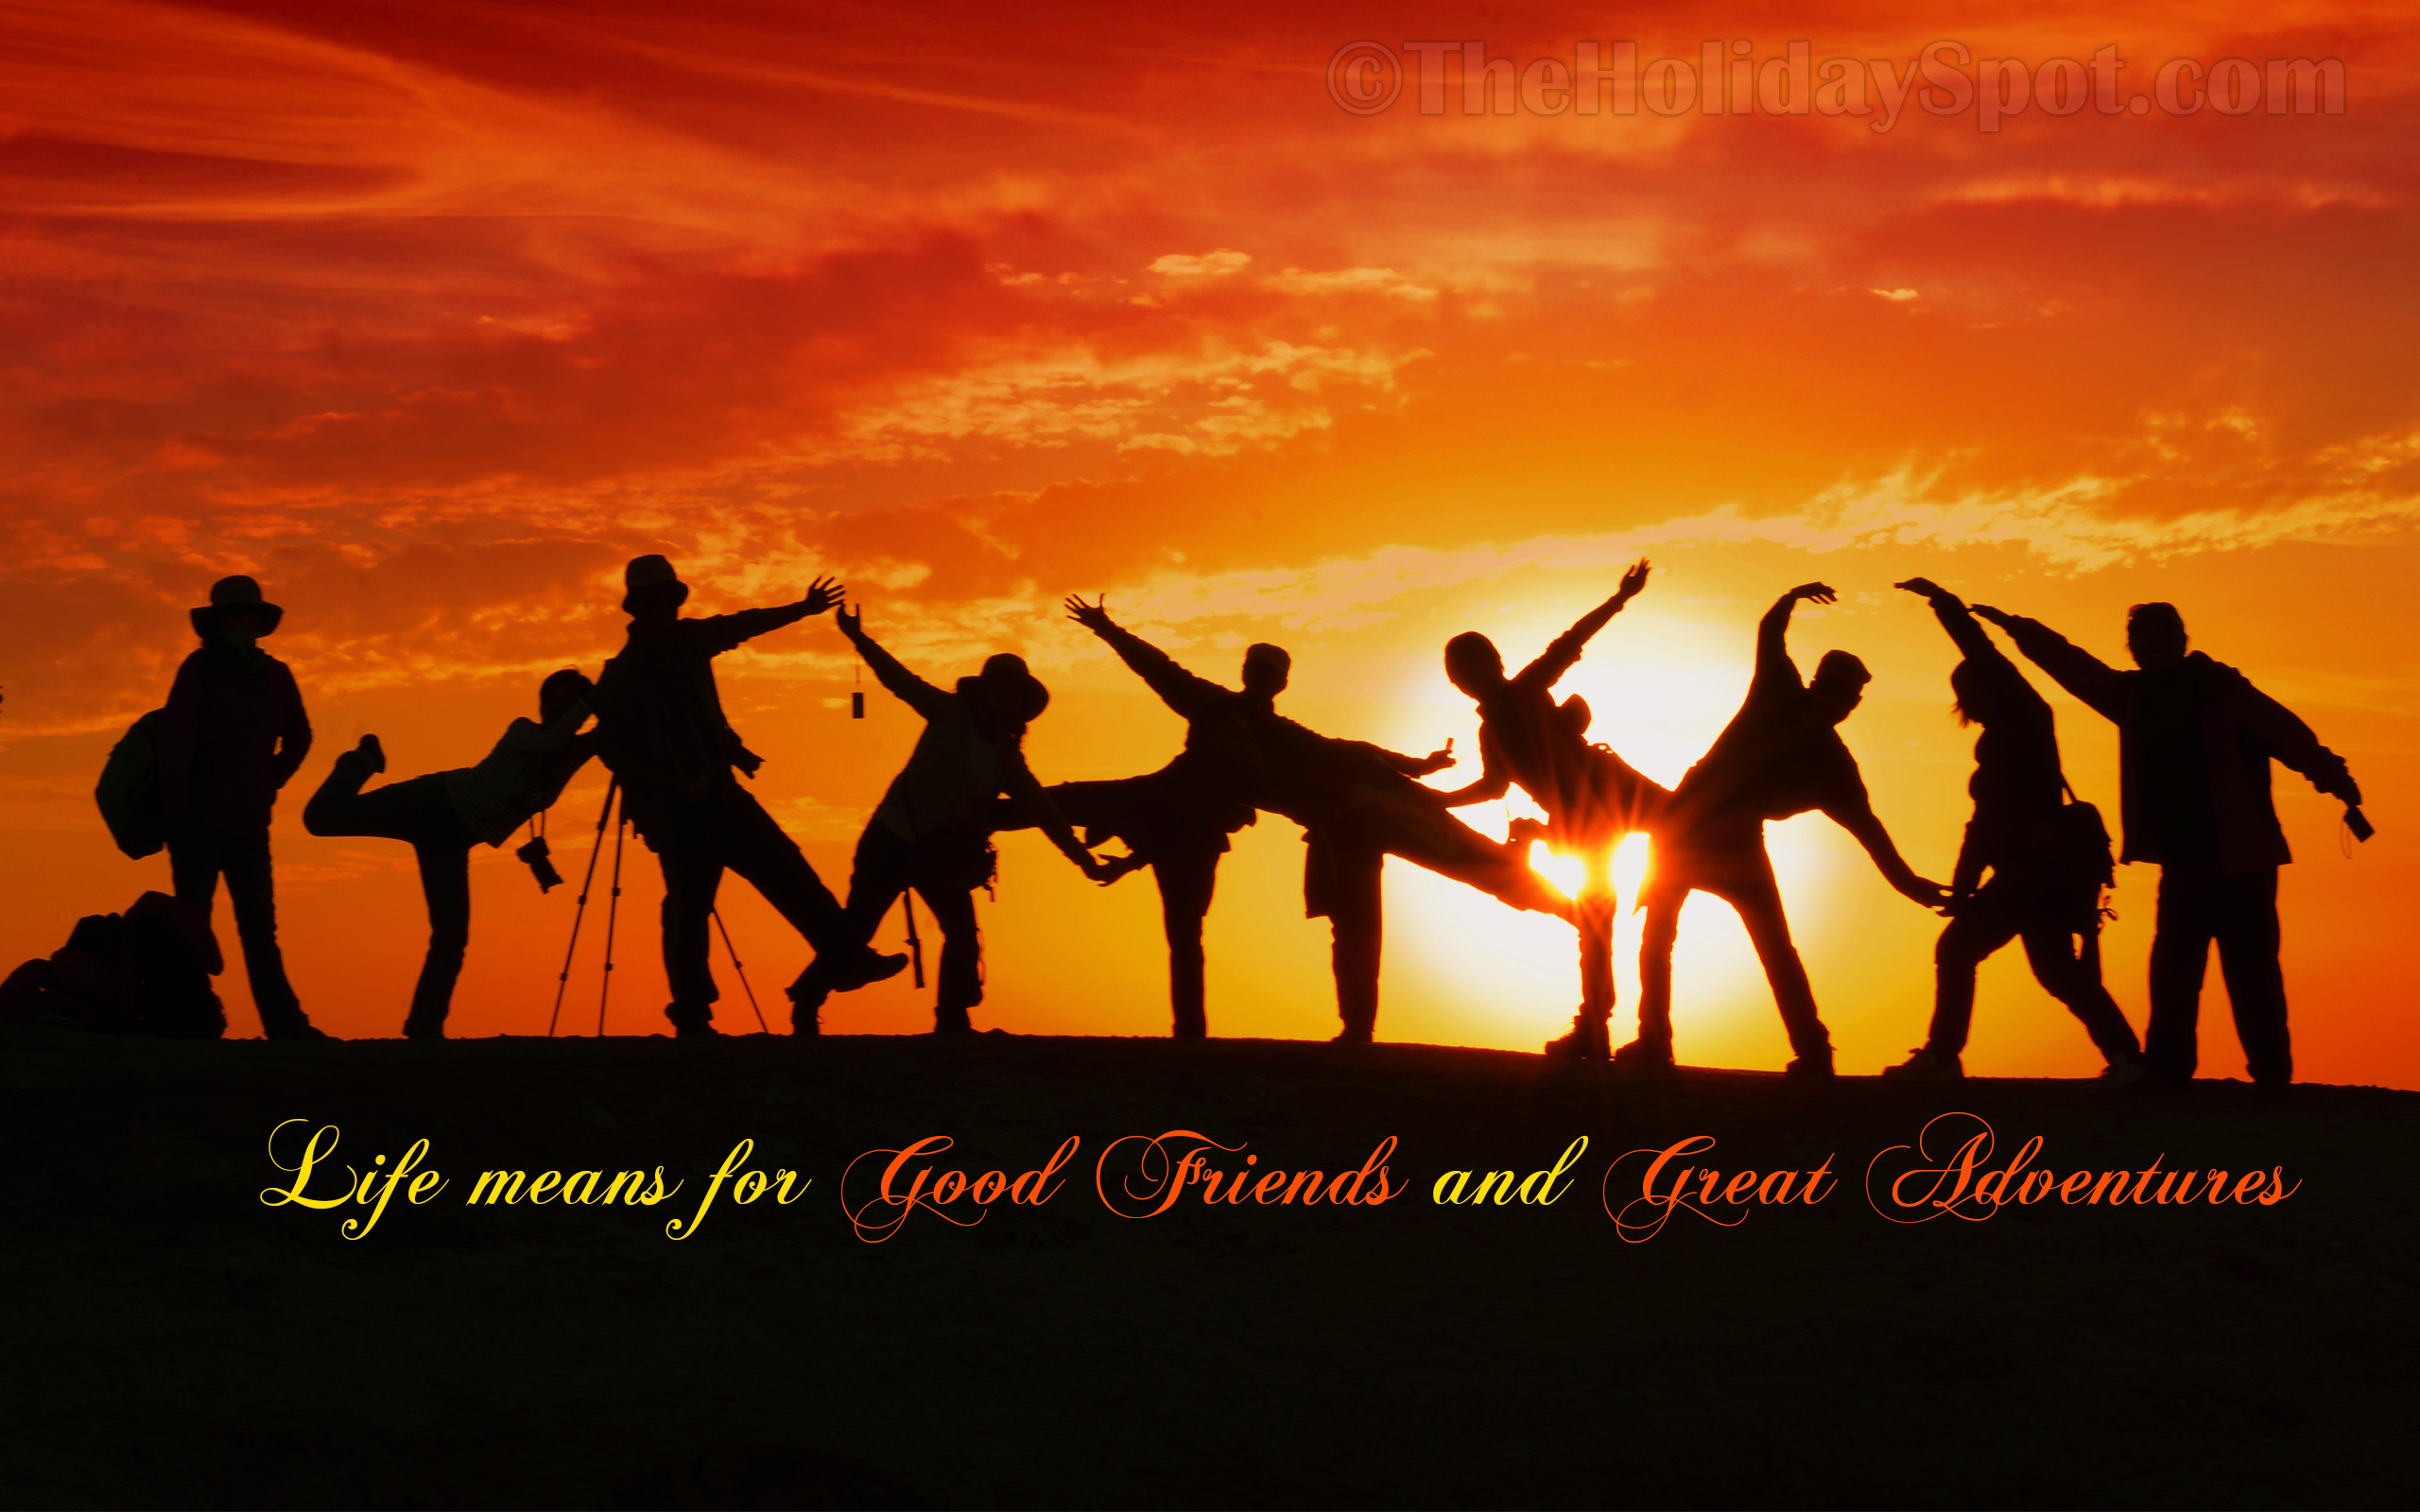 friendship day wallpapersfree friendship day wallpaper